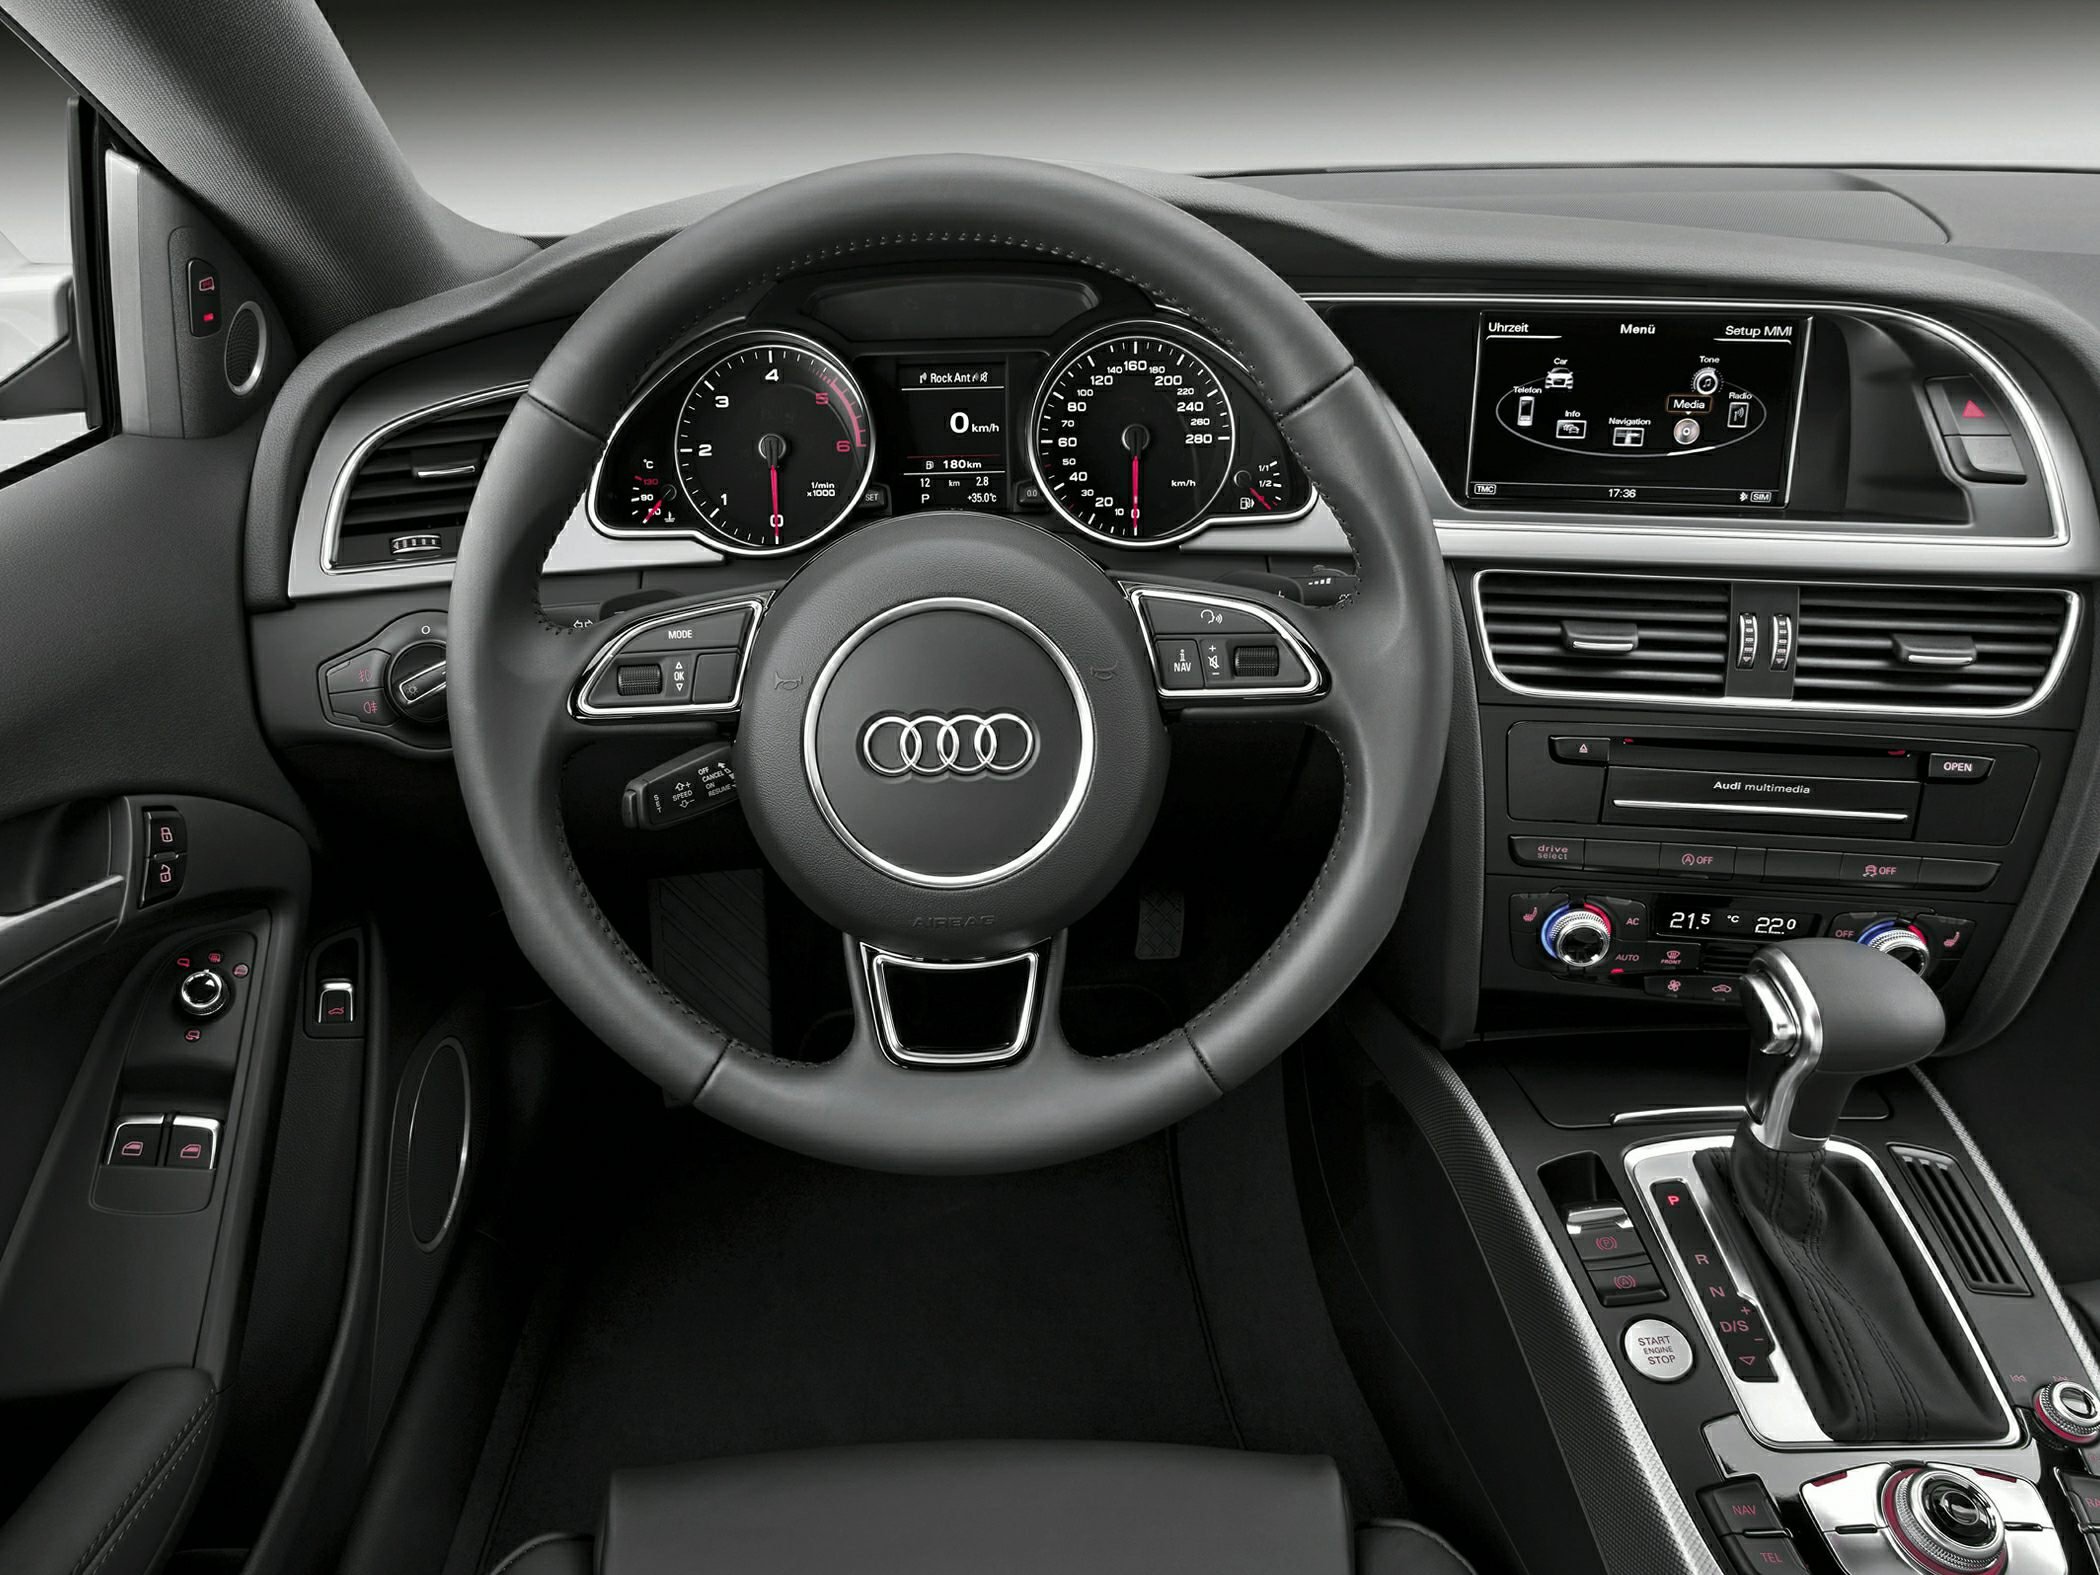 audi a5 i restyling 2011 2016 coupe outstanding cars rh carsot com audi a5 owners manual 2017 audi a5 owner's manual 2014